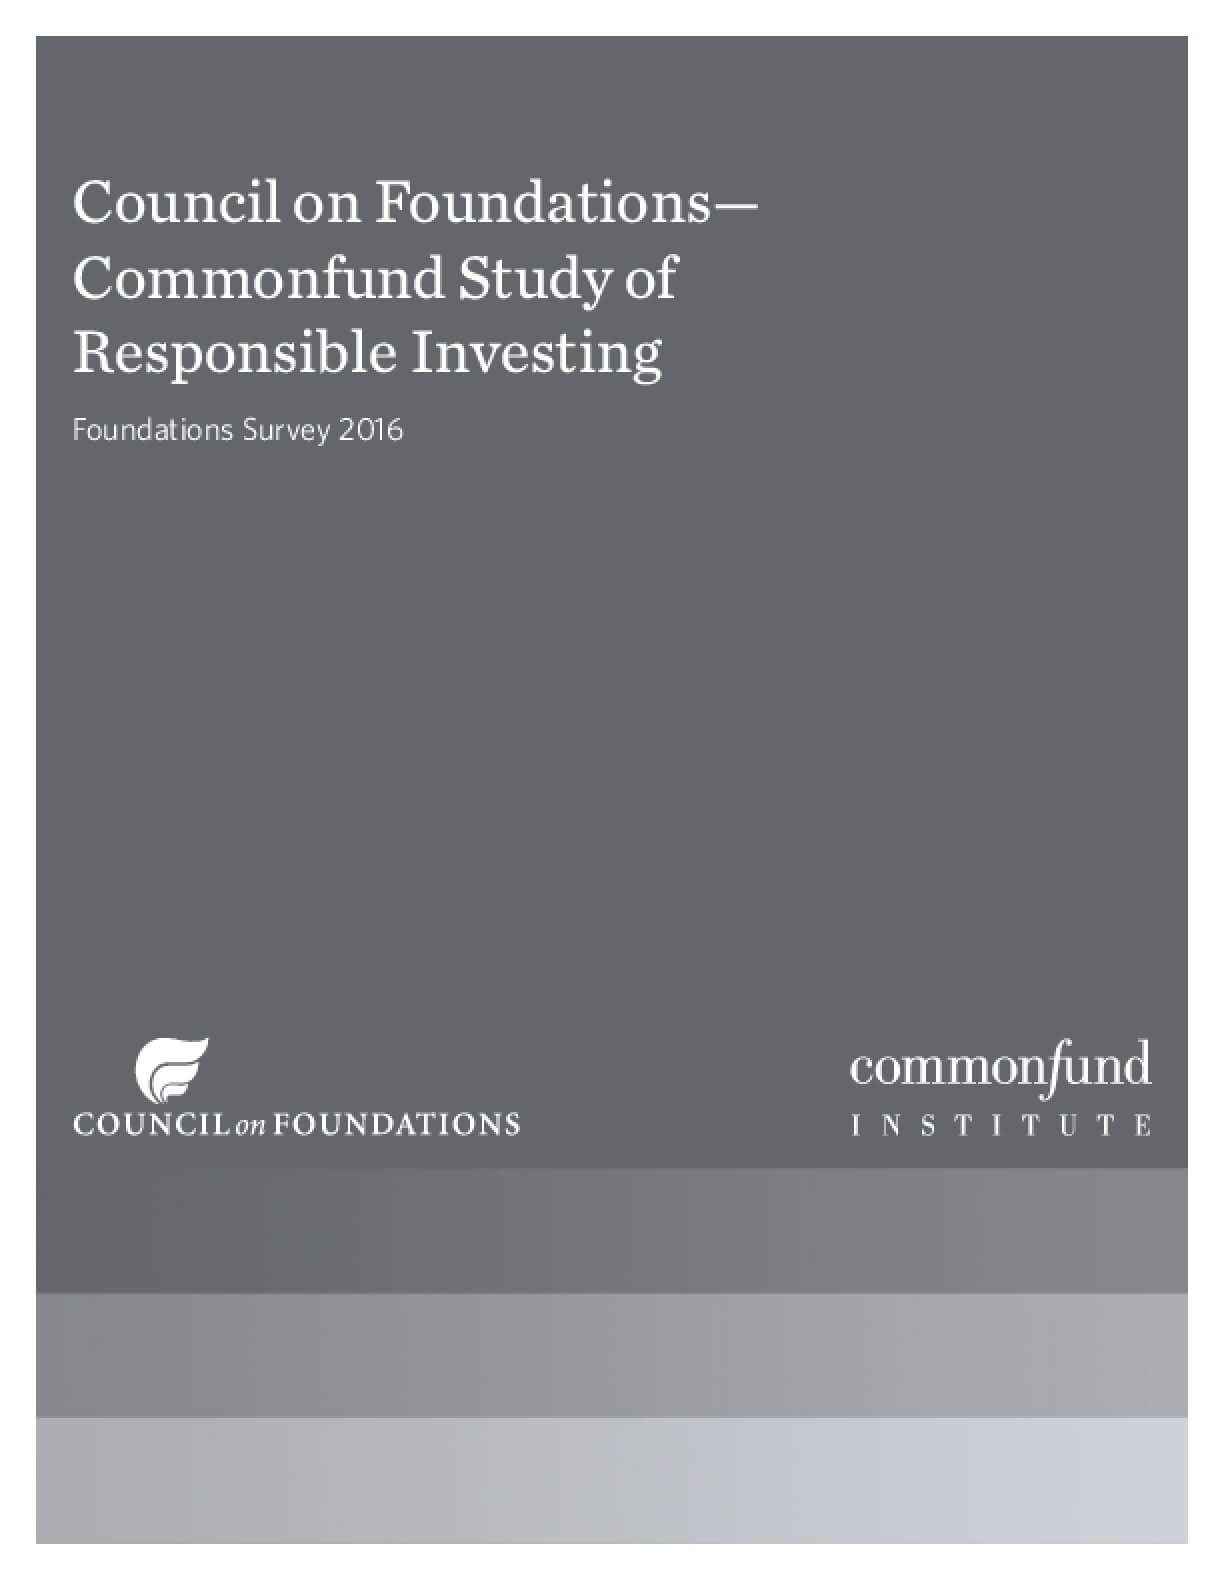 Council on Foundations: Commonfund Study of Responsible Investing